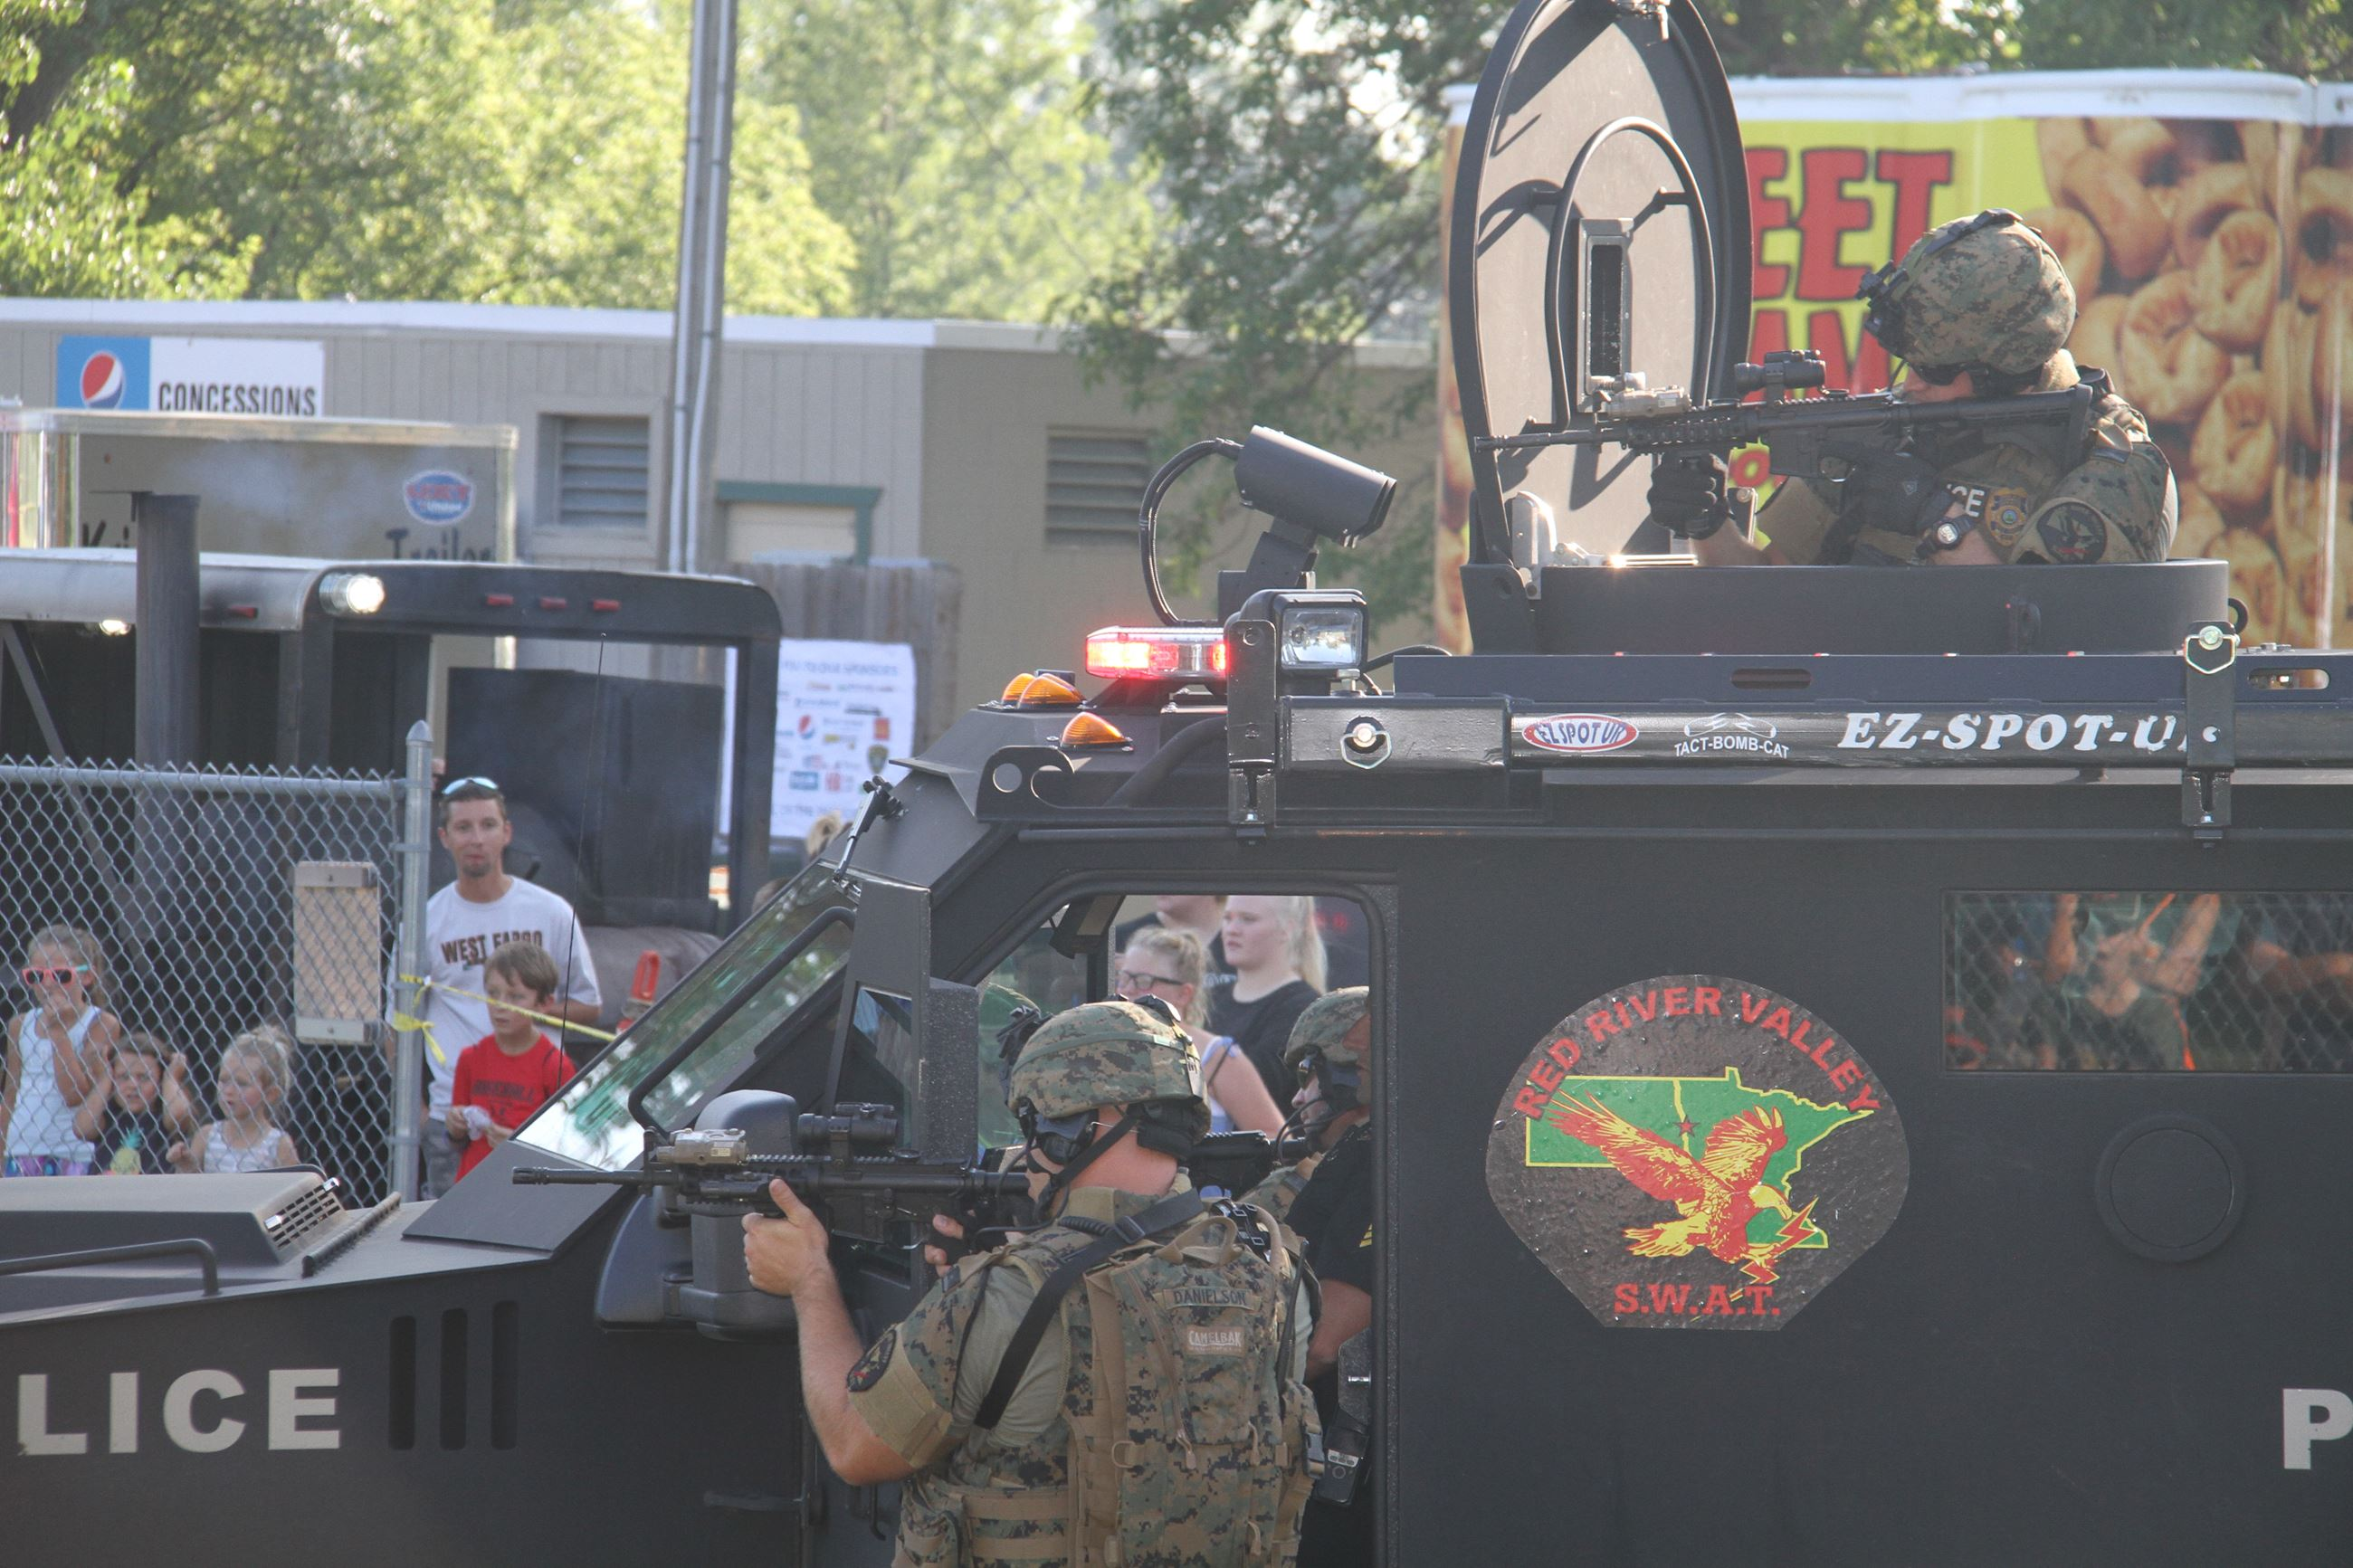 Red River Valley SWAT Team demonstration